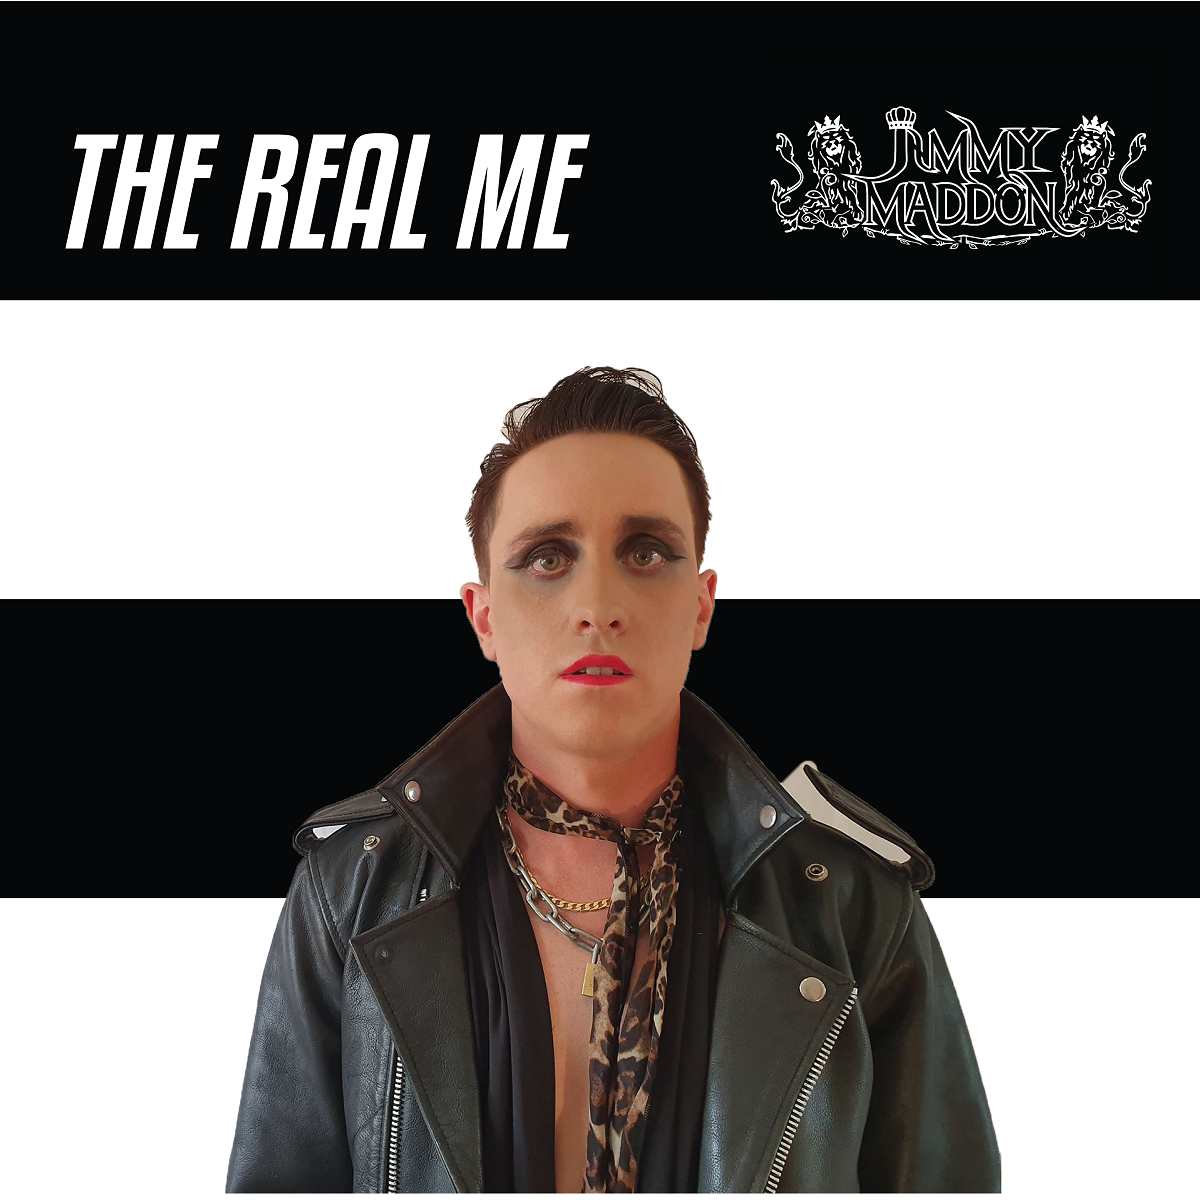 Jimmy Maddon – 'The Real Me'